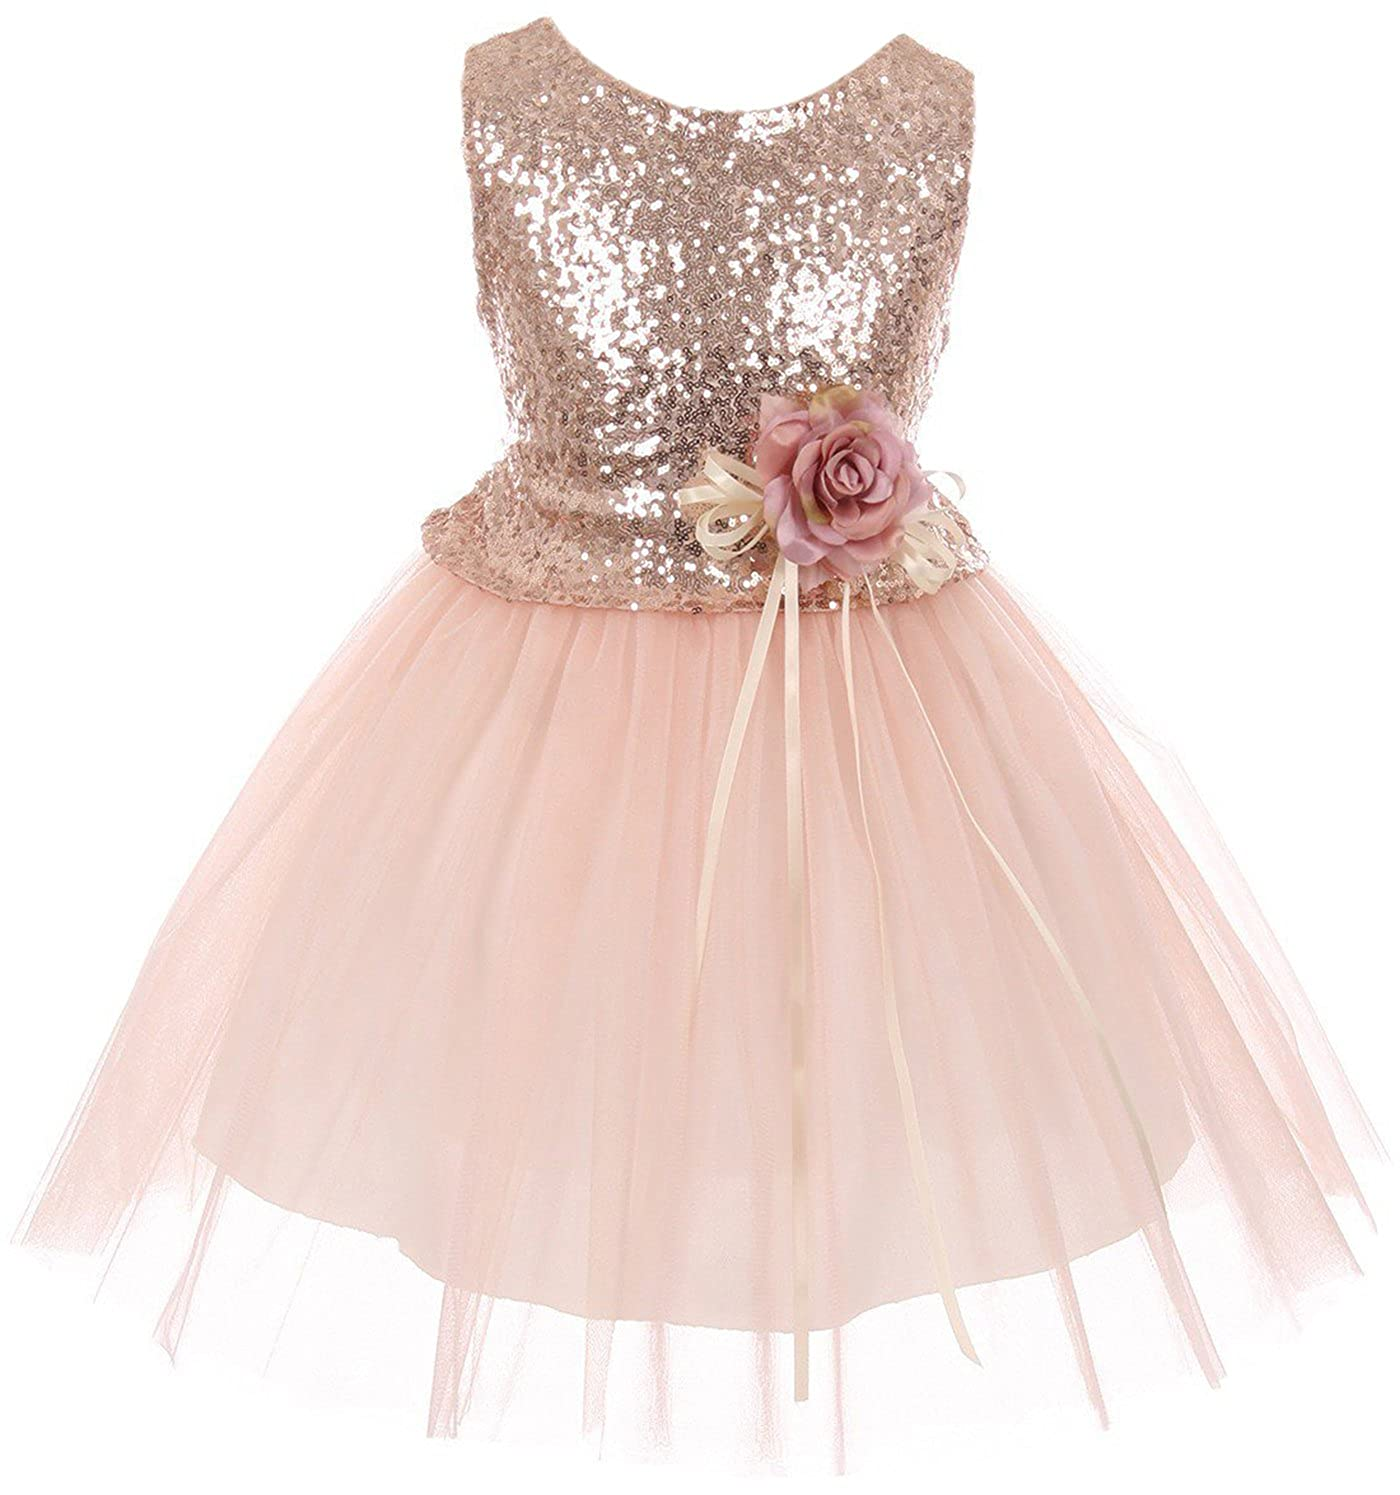 b405981a07a Sleeveless Sequin Glitter Flower Girl dress. Flower ornament attached to  the waist releasing an overlaid stunning skirt. Key-hole at back and tie  sash.